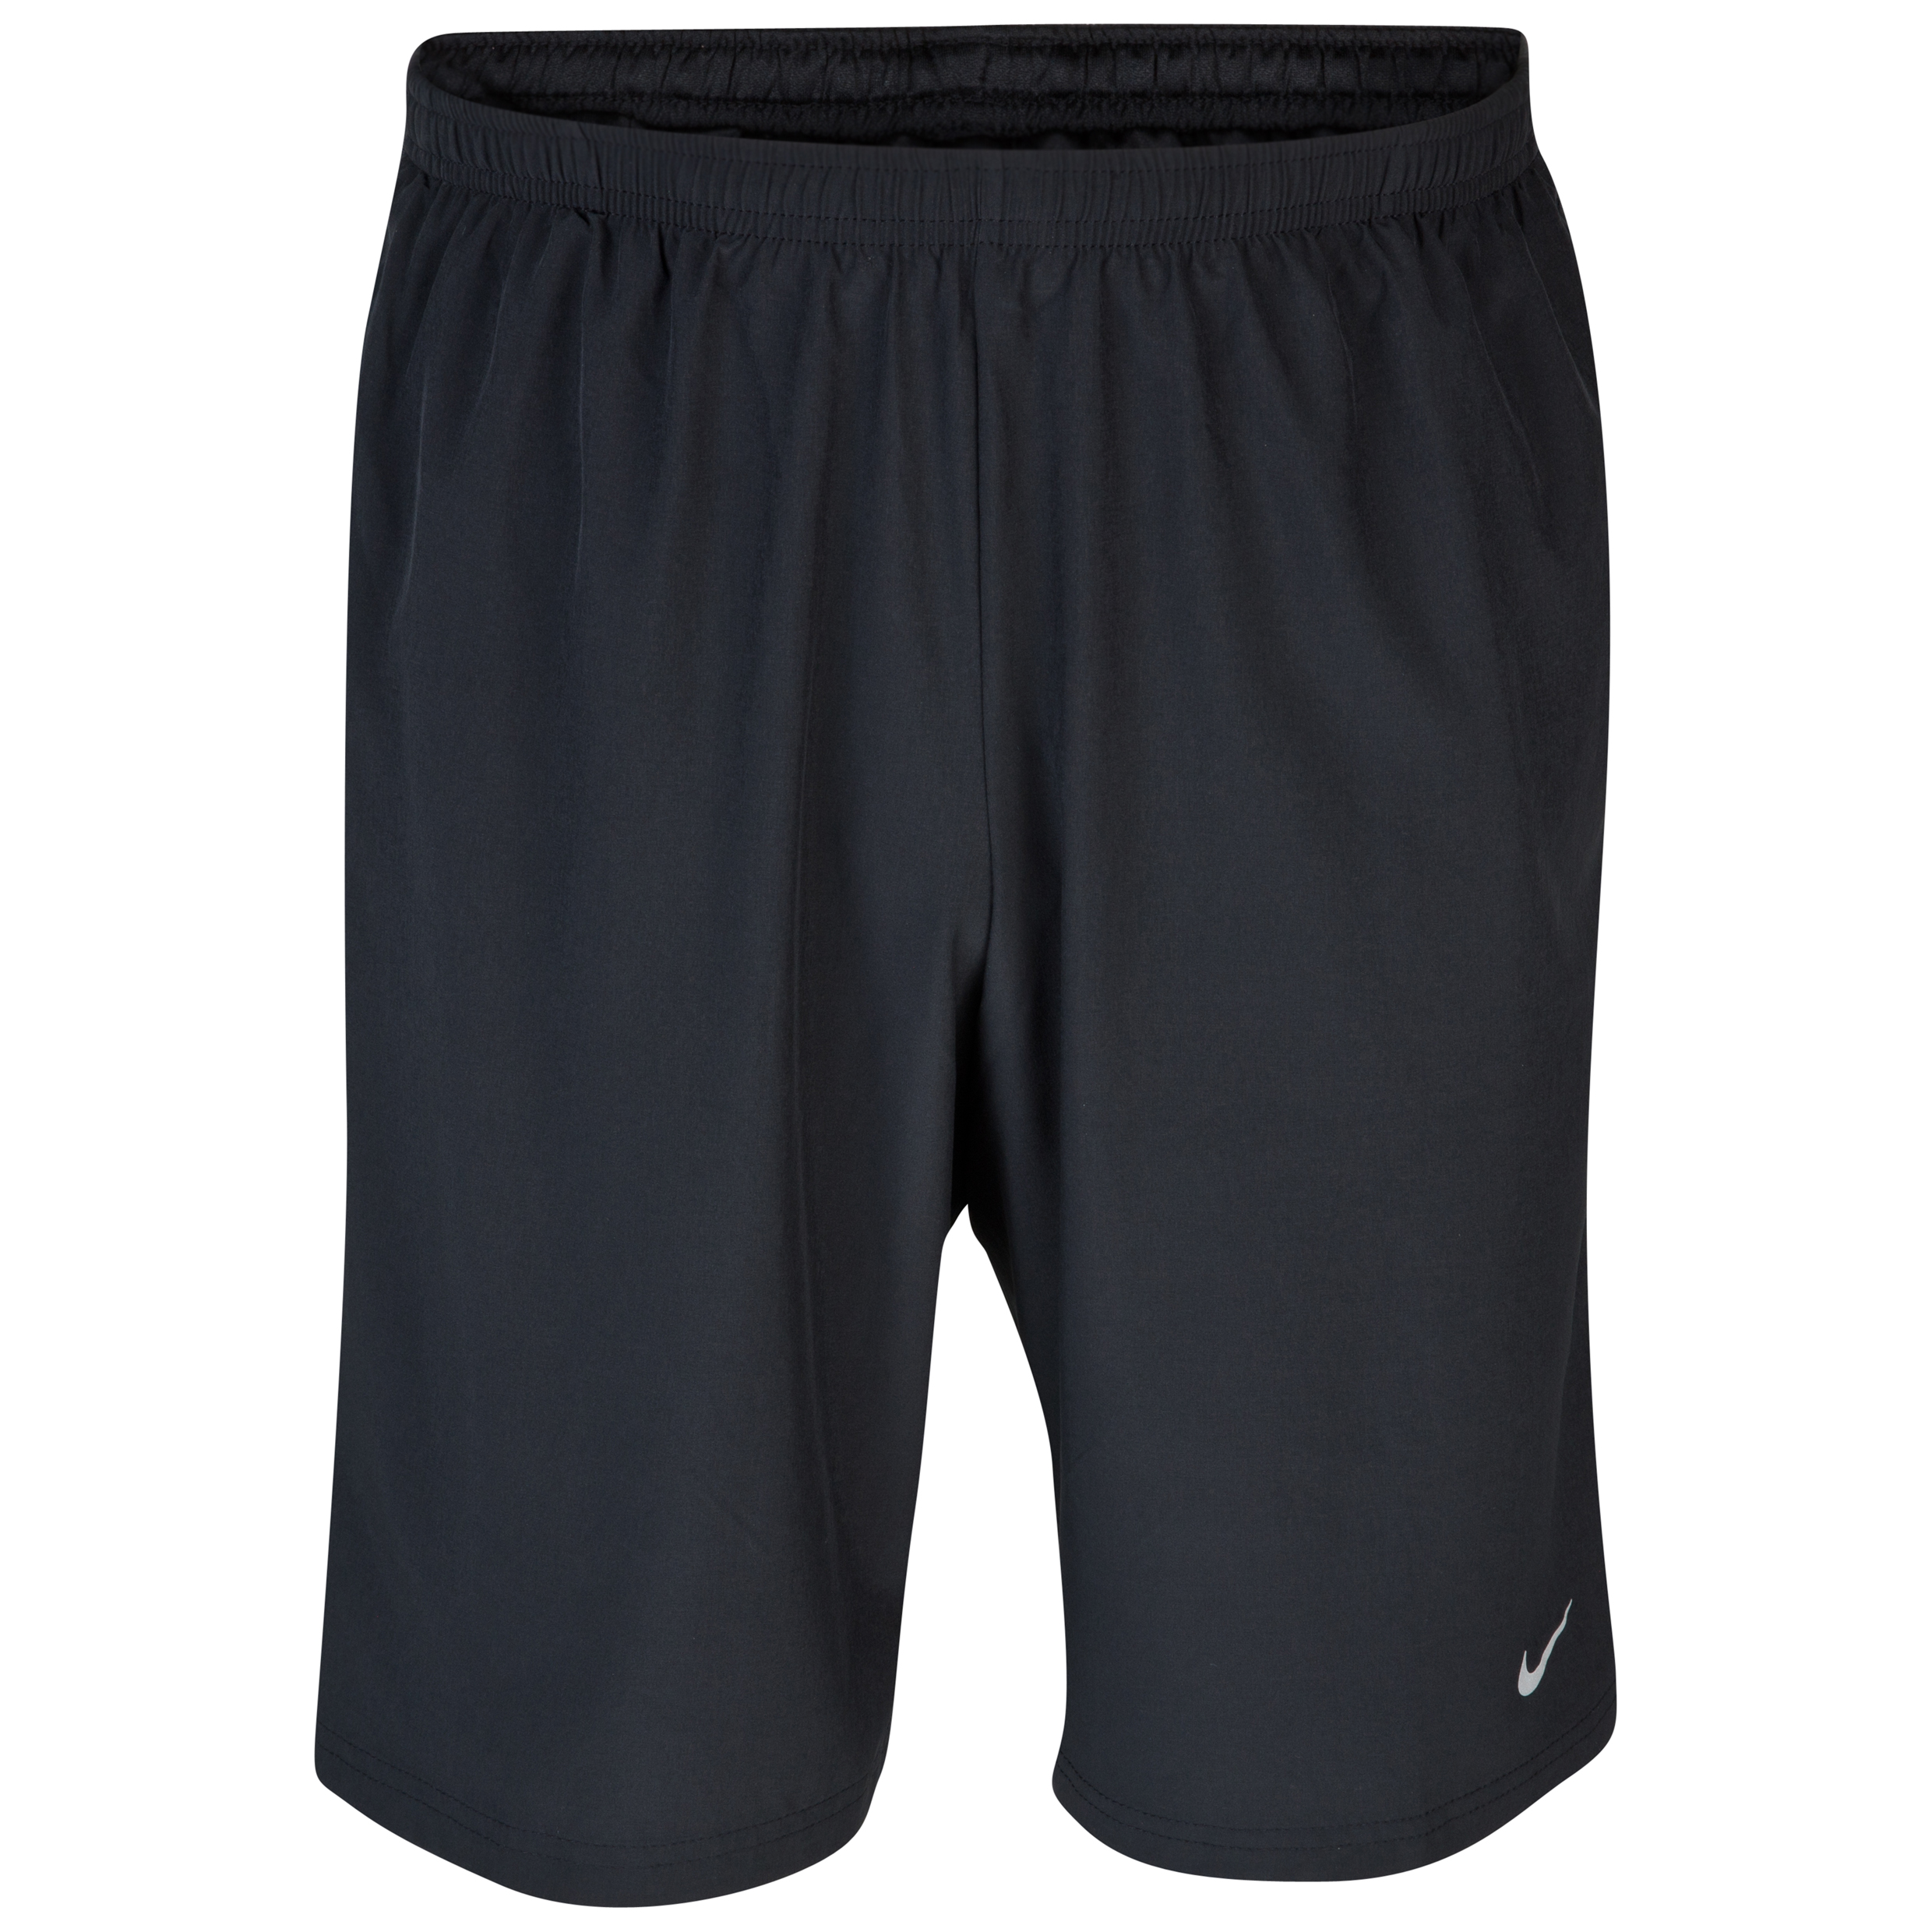 Nike 9inch Short - Black/Anthracite/White/Reflective Silver